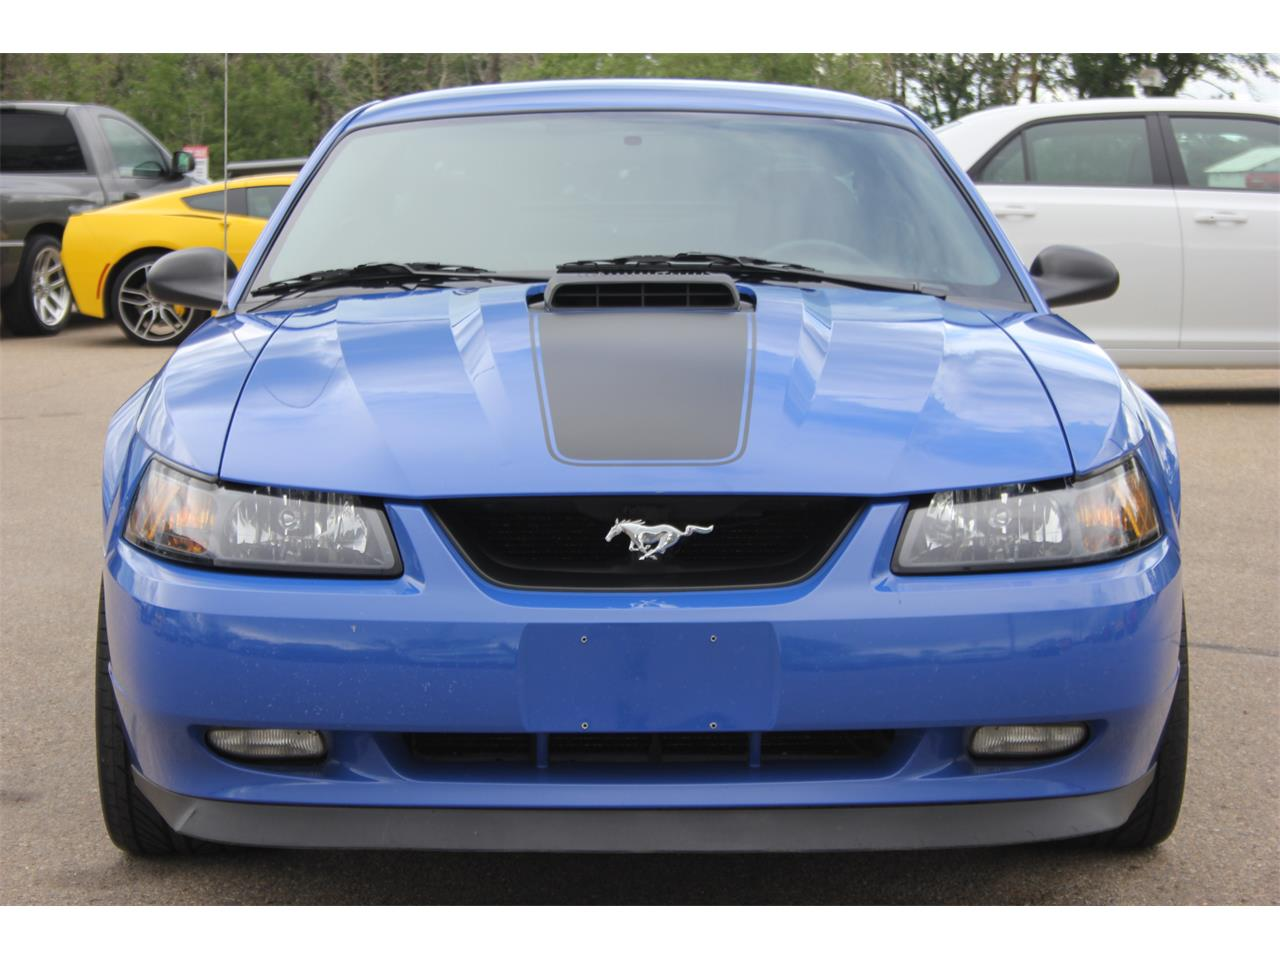 Large Picture of '03 Mustang Mach 1 - $19,900.00 Offered by Adrenalin Motors - LAXP